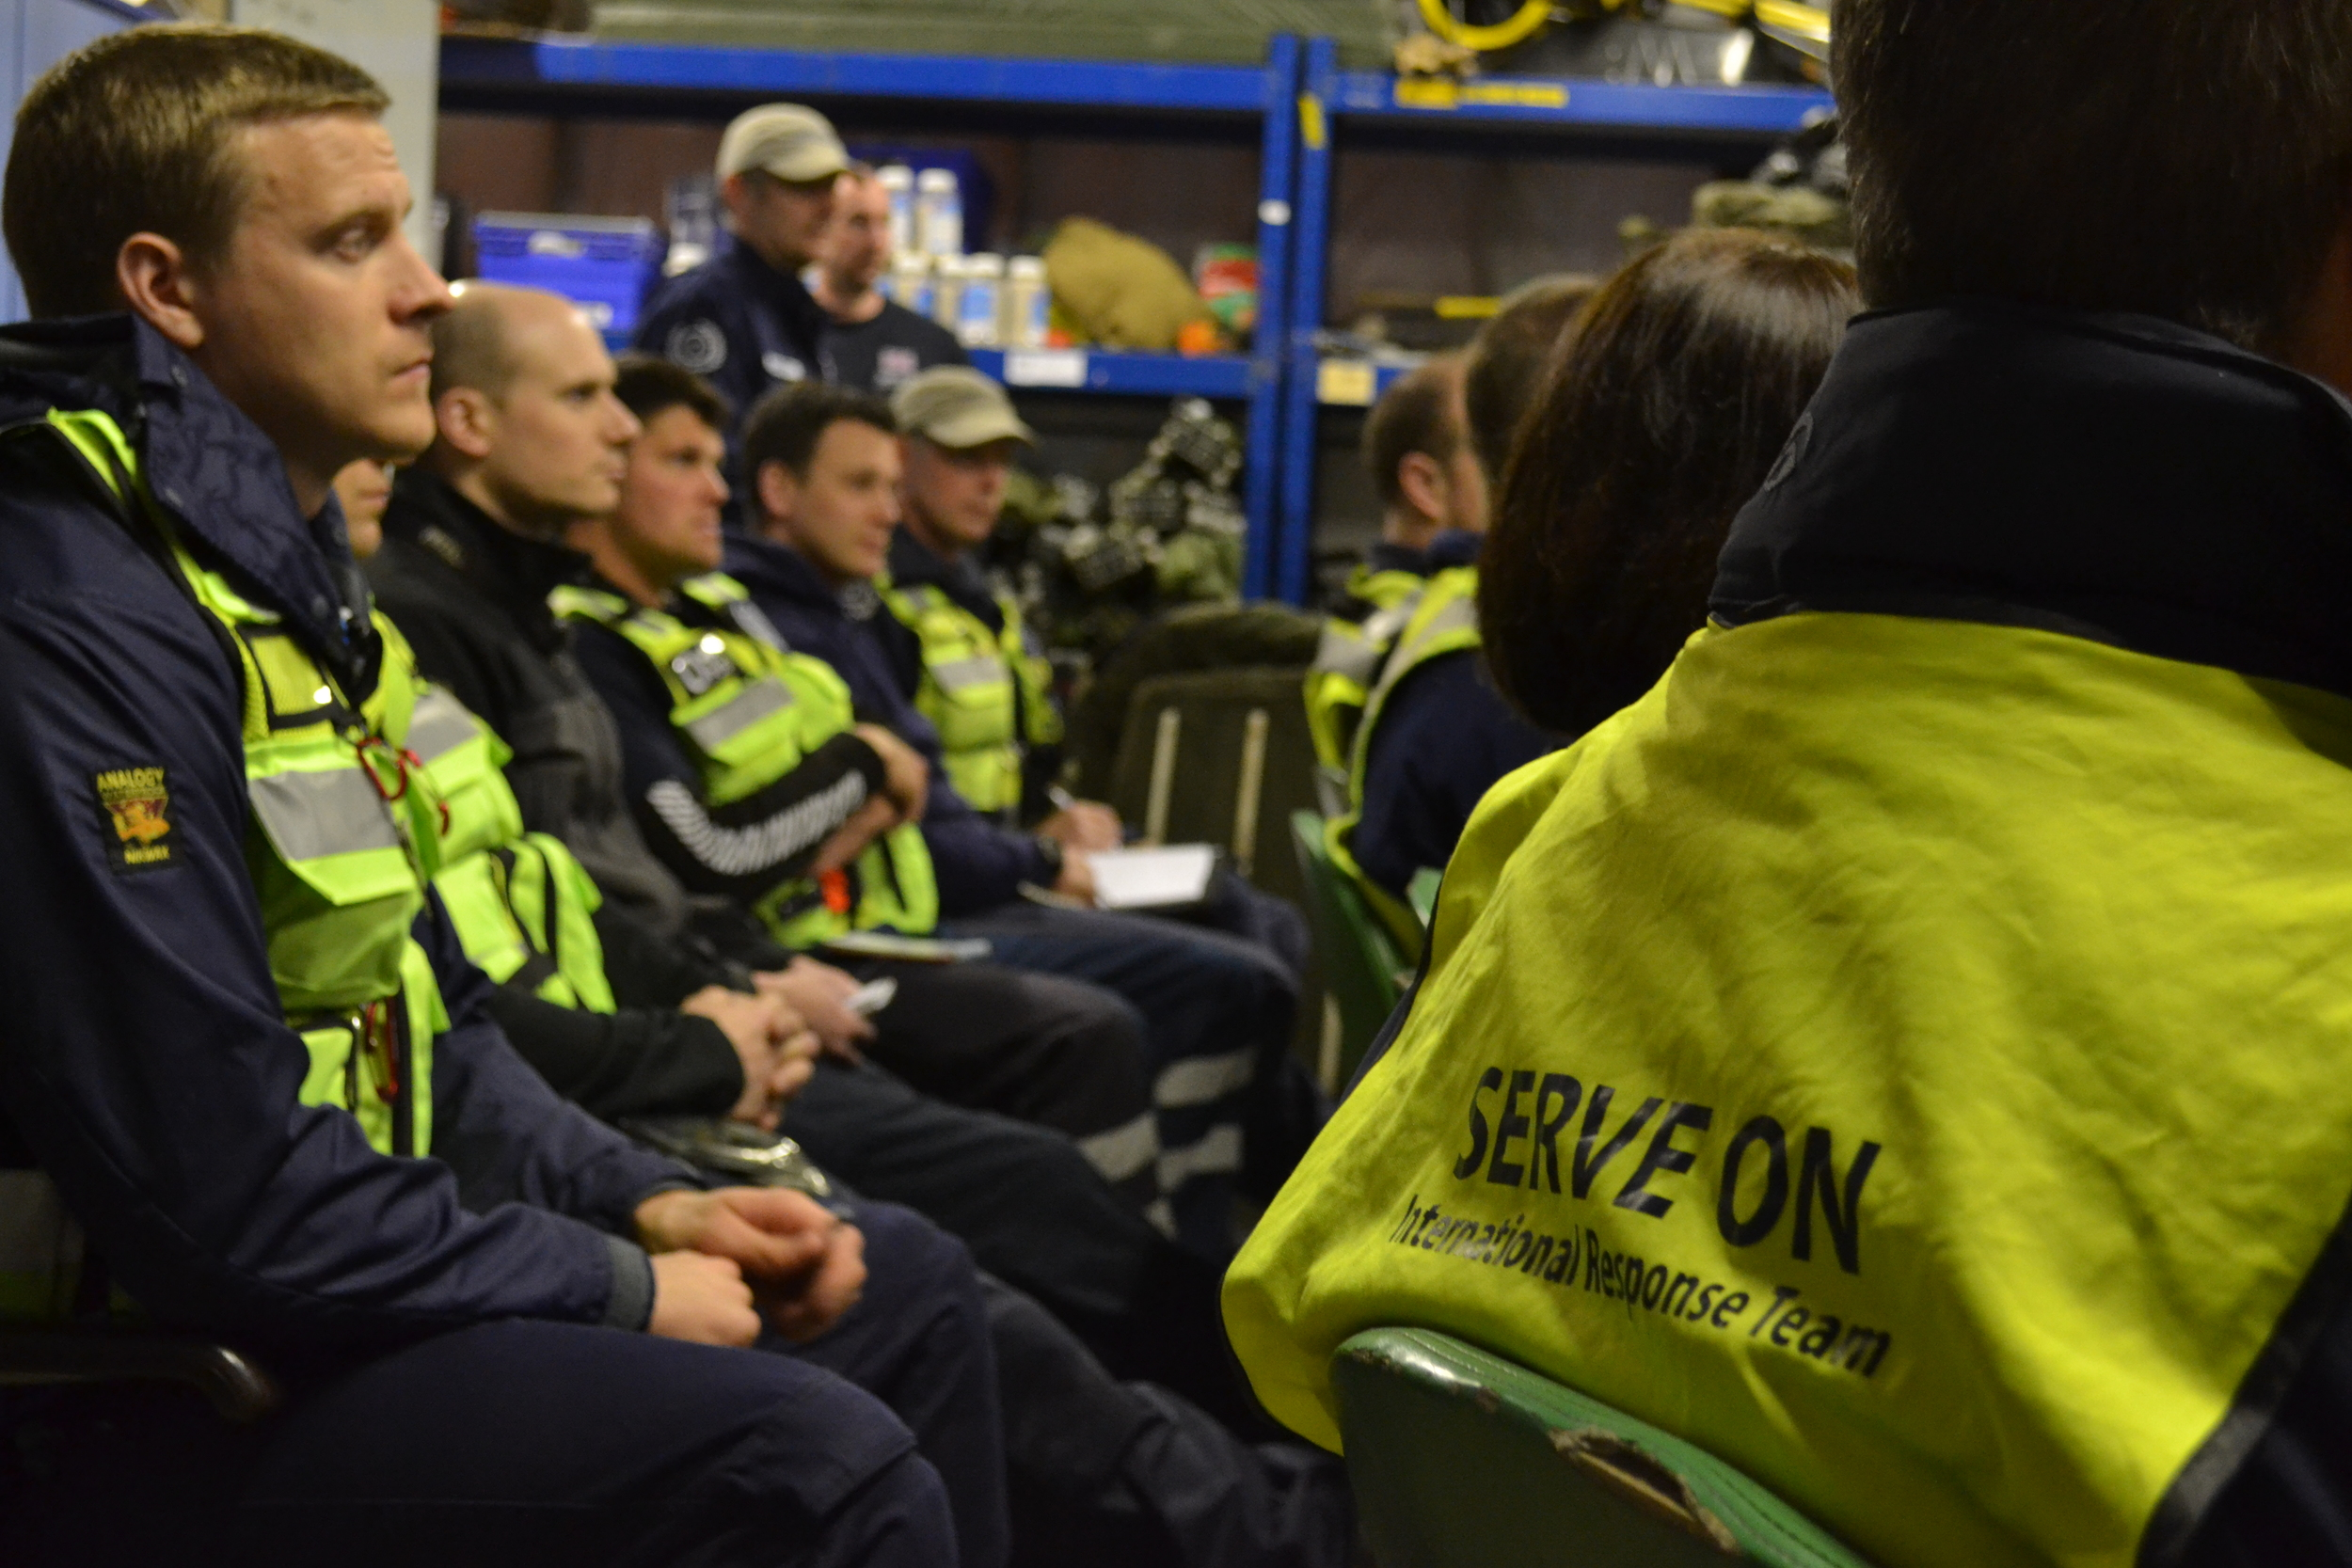 The team listening to the briefing and scenarios